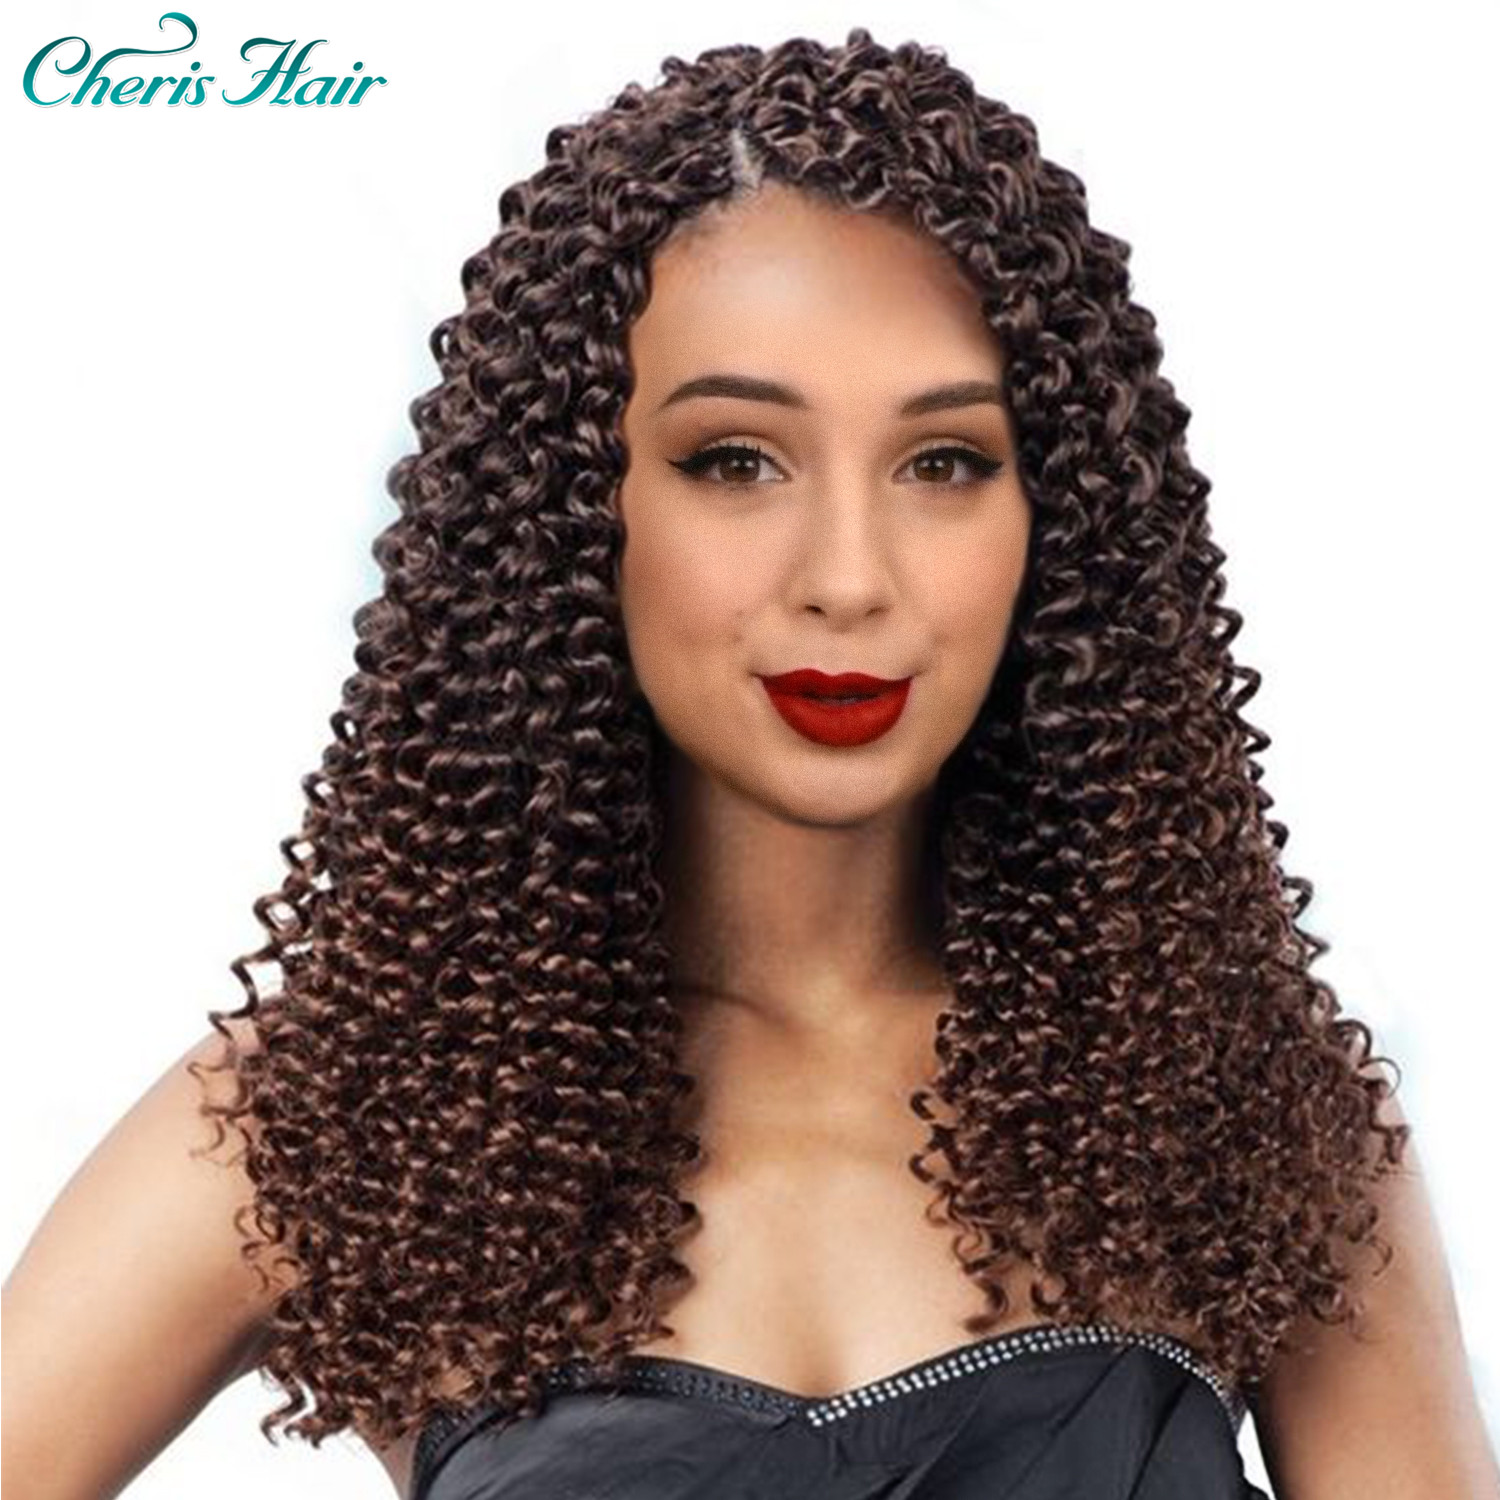 Crochet Hair Water Wavy Curly Hair 14 Inch /100 G / PC Crochet Freetresse Hair Extension Synthetic Hair Extension For Afro Women